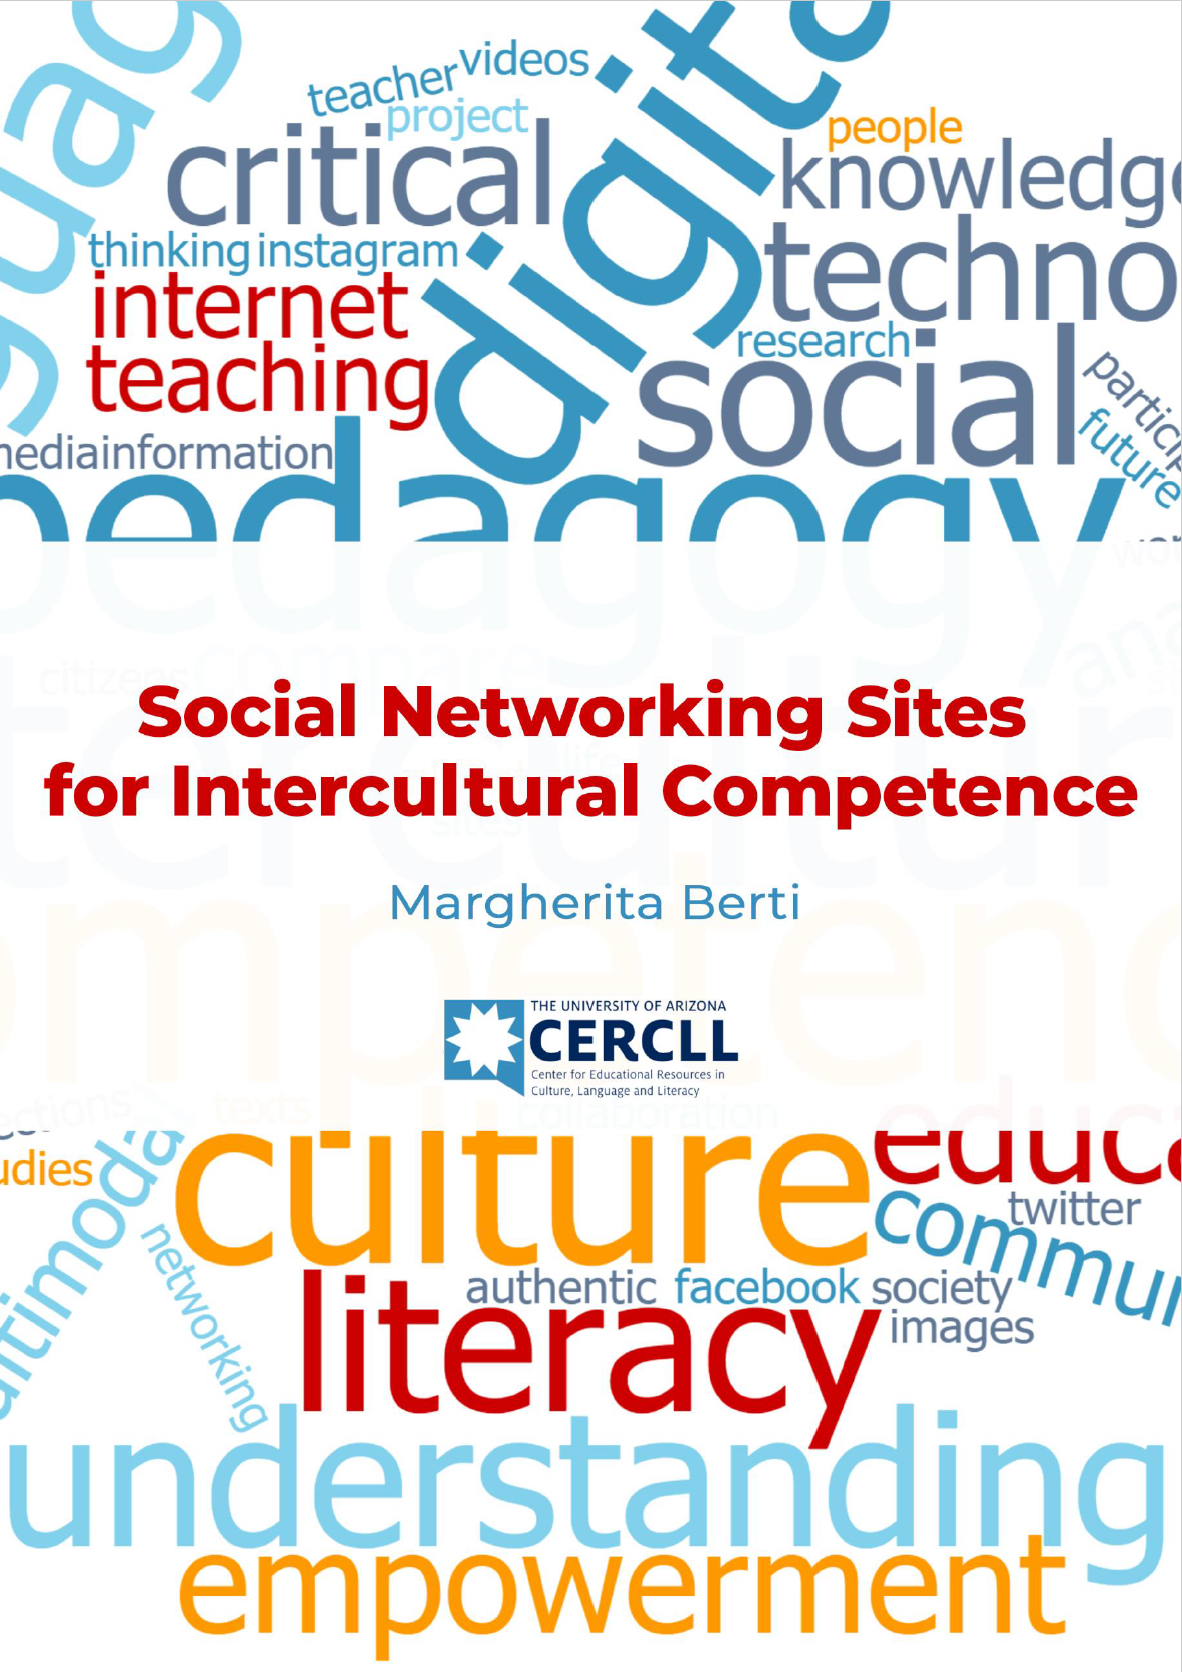 Social Networking Sites for Intercultural Competence